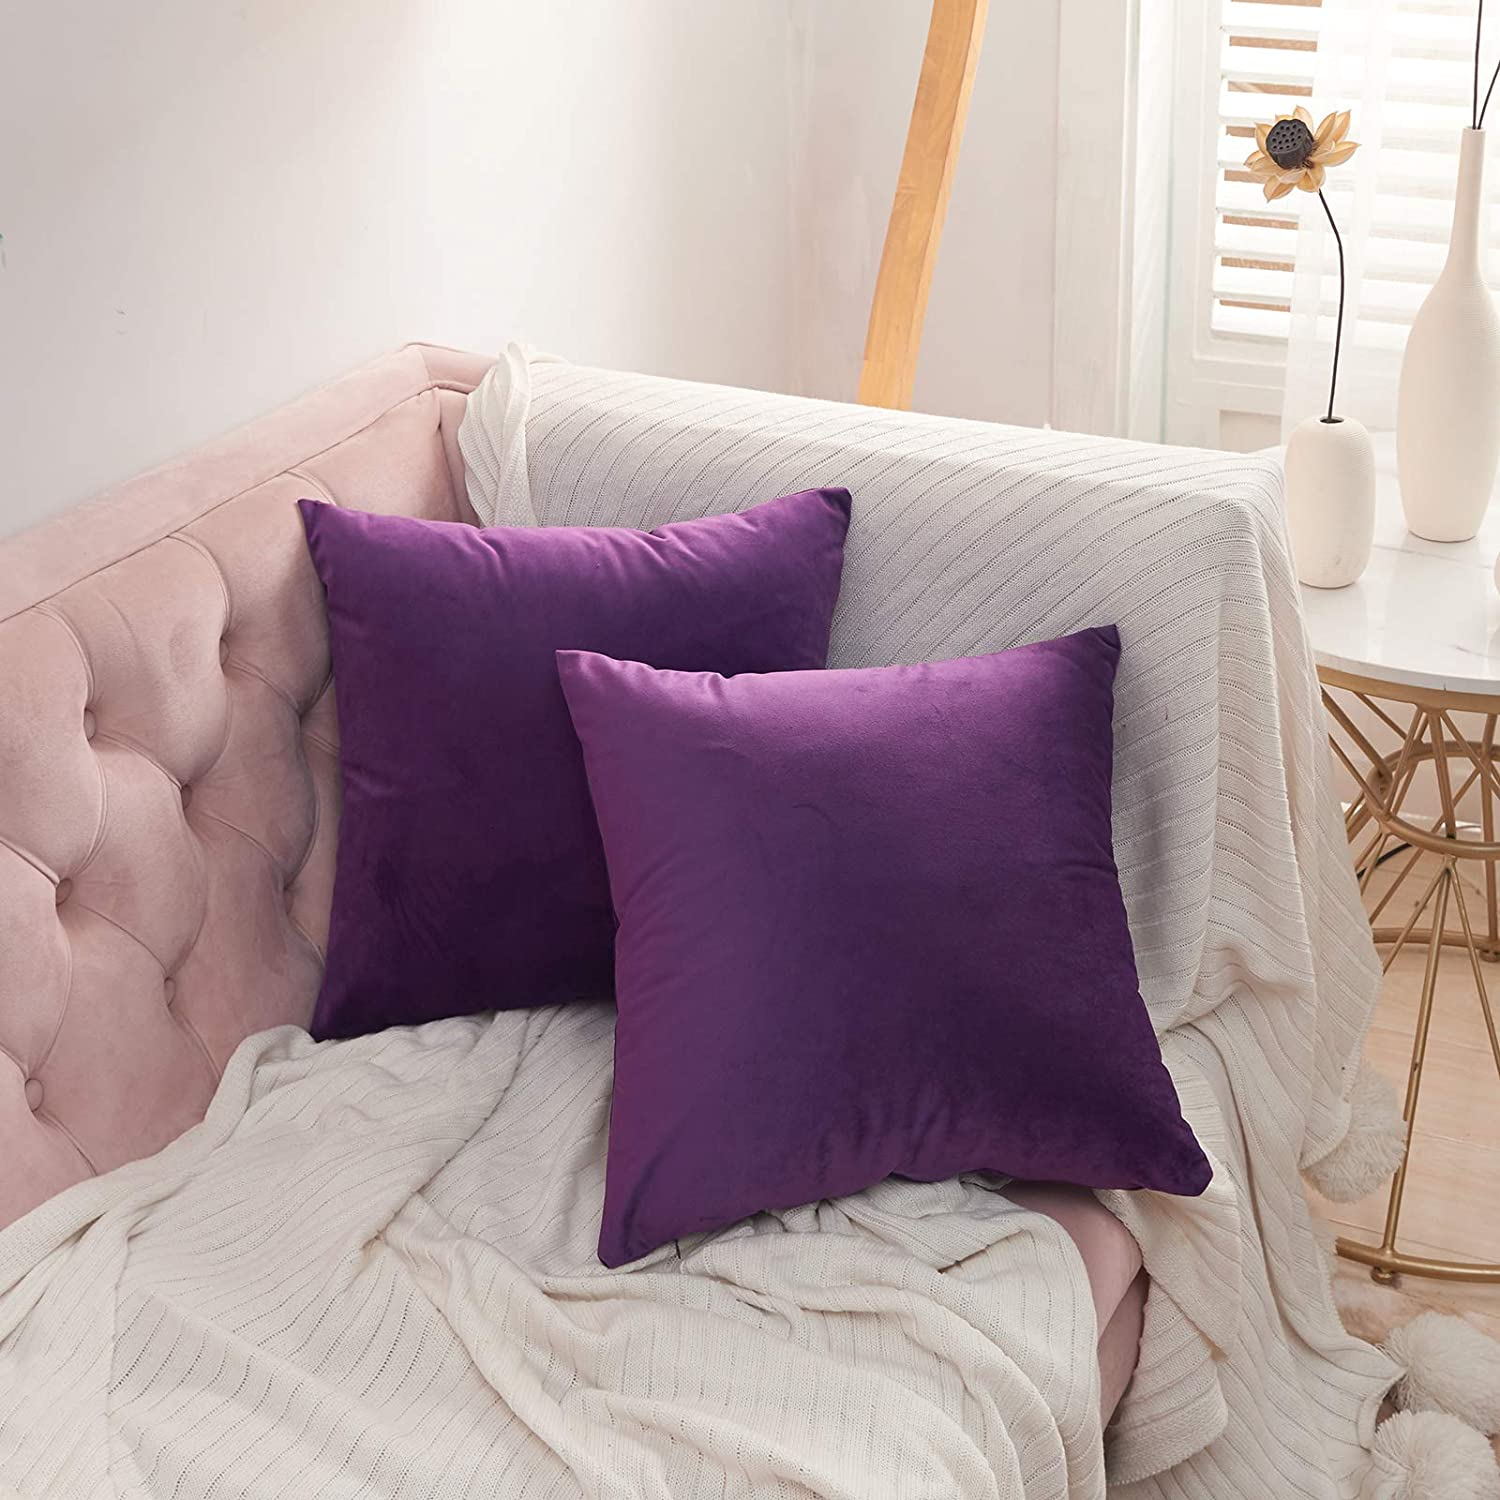 Volcanics Velvet Decorative Throw Pillow Covers Set of 2 Soft Solid Square Couch Pillow Cover Case Cushion Pillowcase 18x18 Inches for Home Decor Sofa Bedroom Car, Eggplant Purple